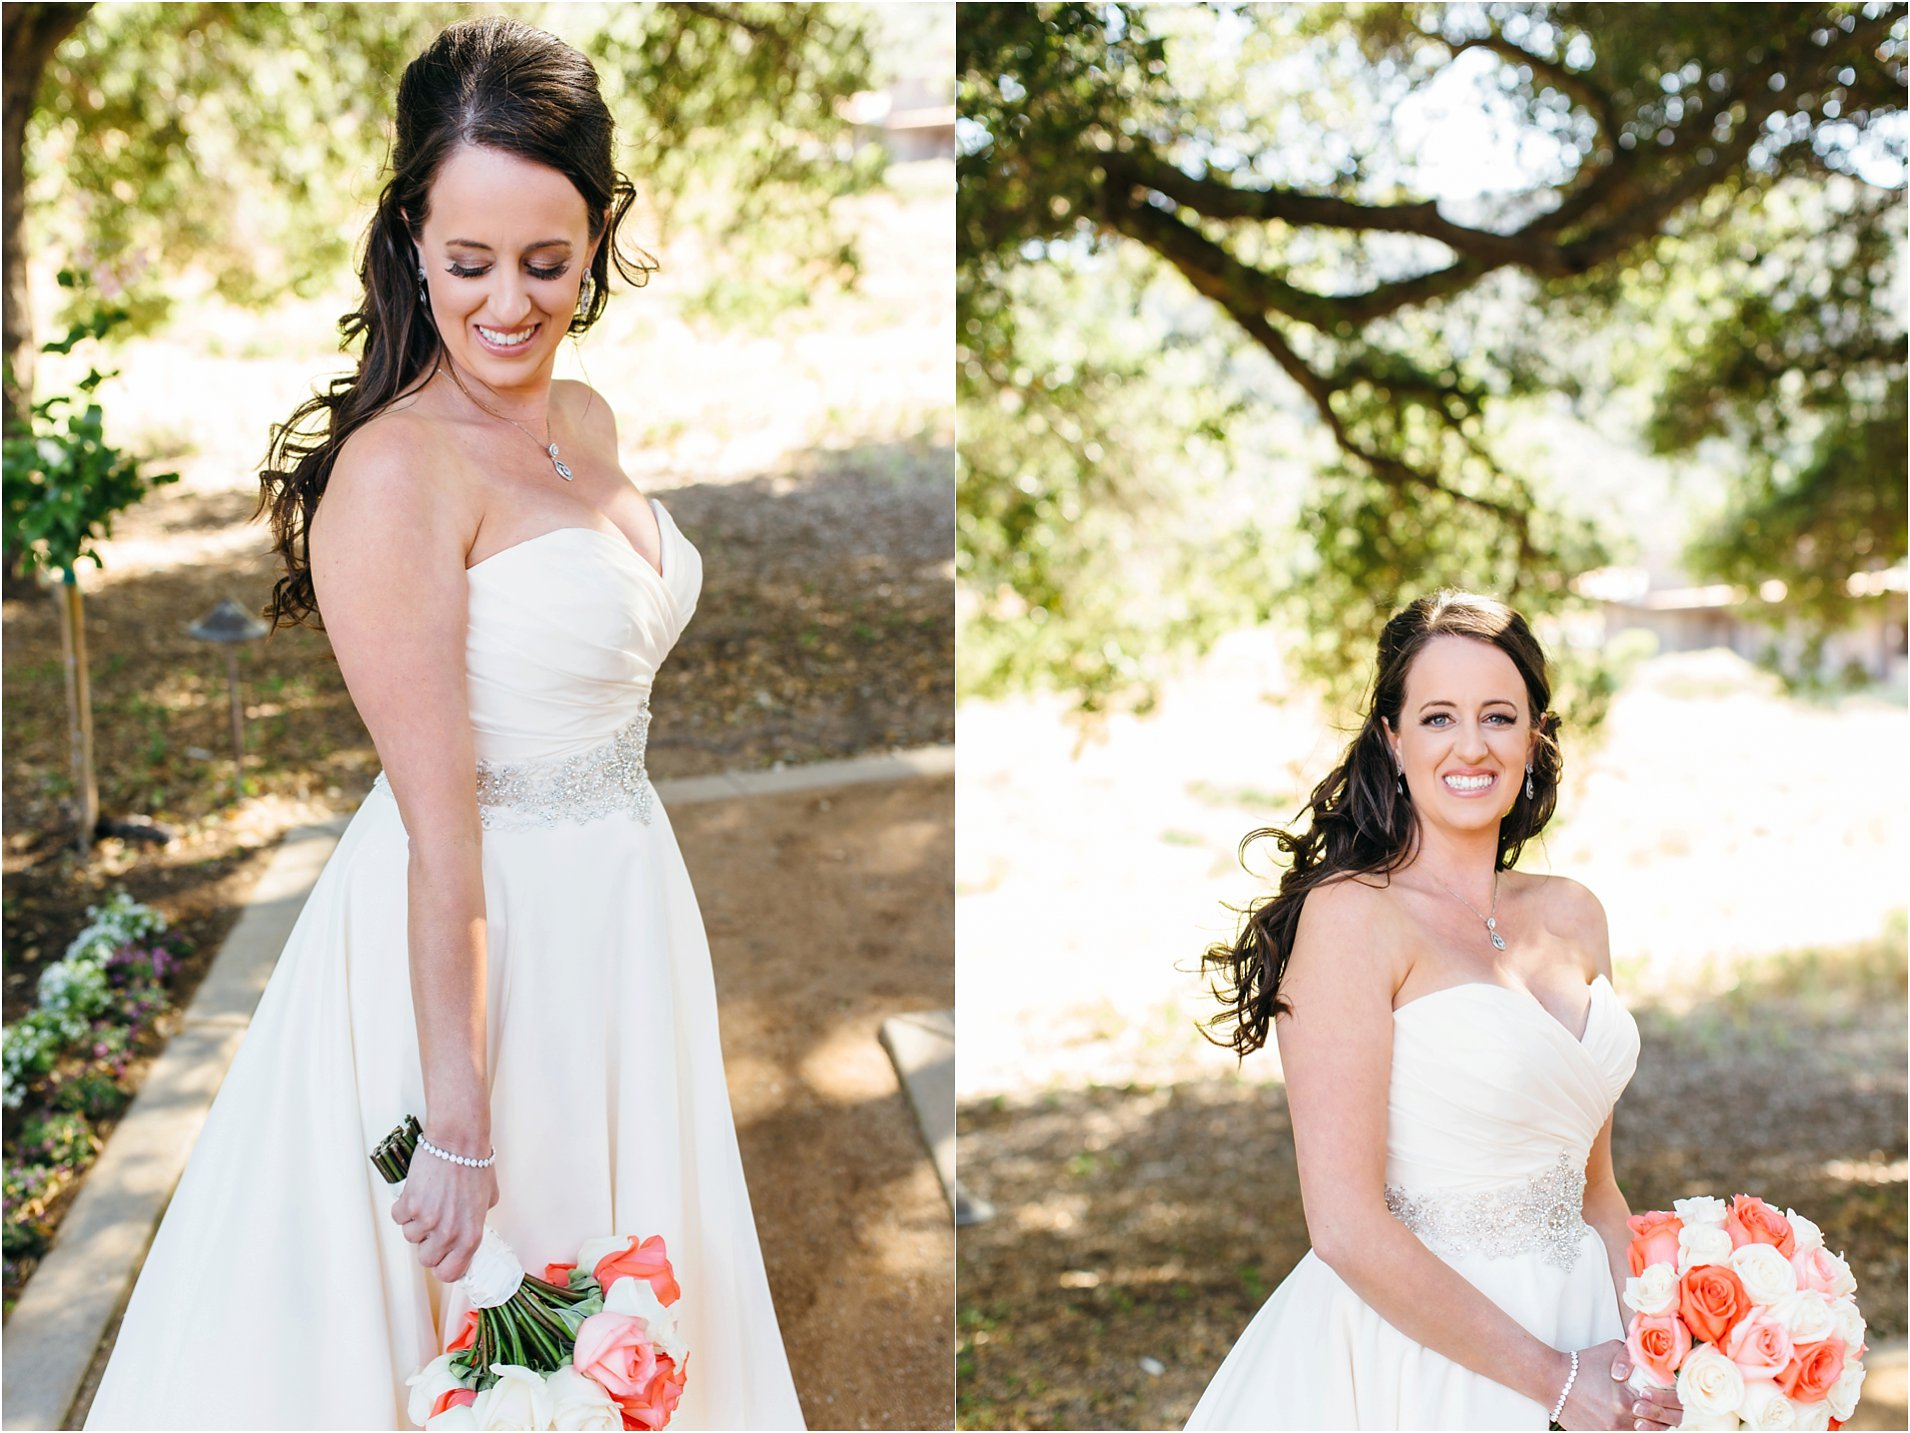 Temecula Wedding Photography: Charles + Jenelle's Pechanga Wedding At Journey's End